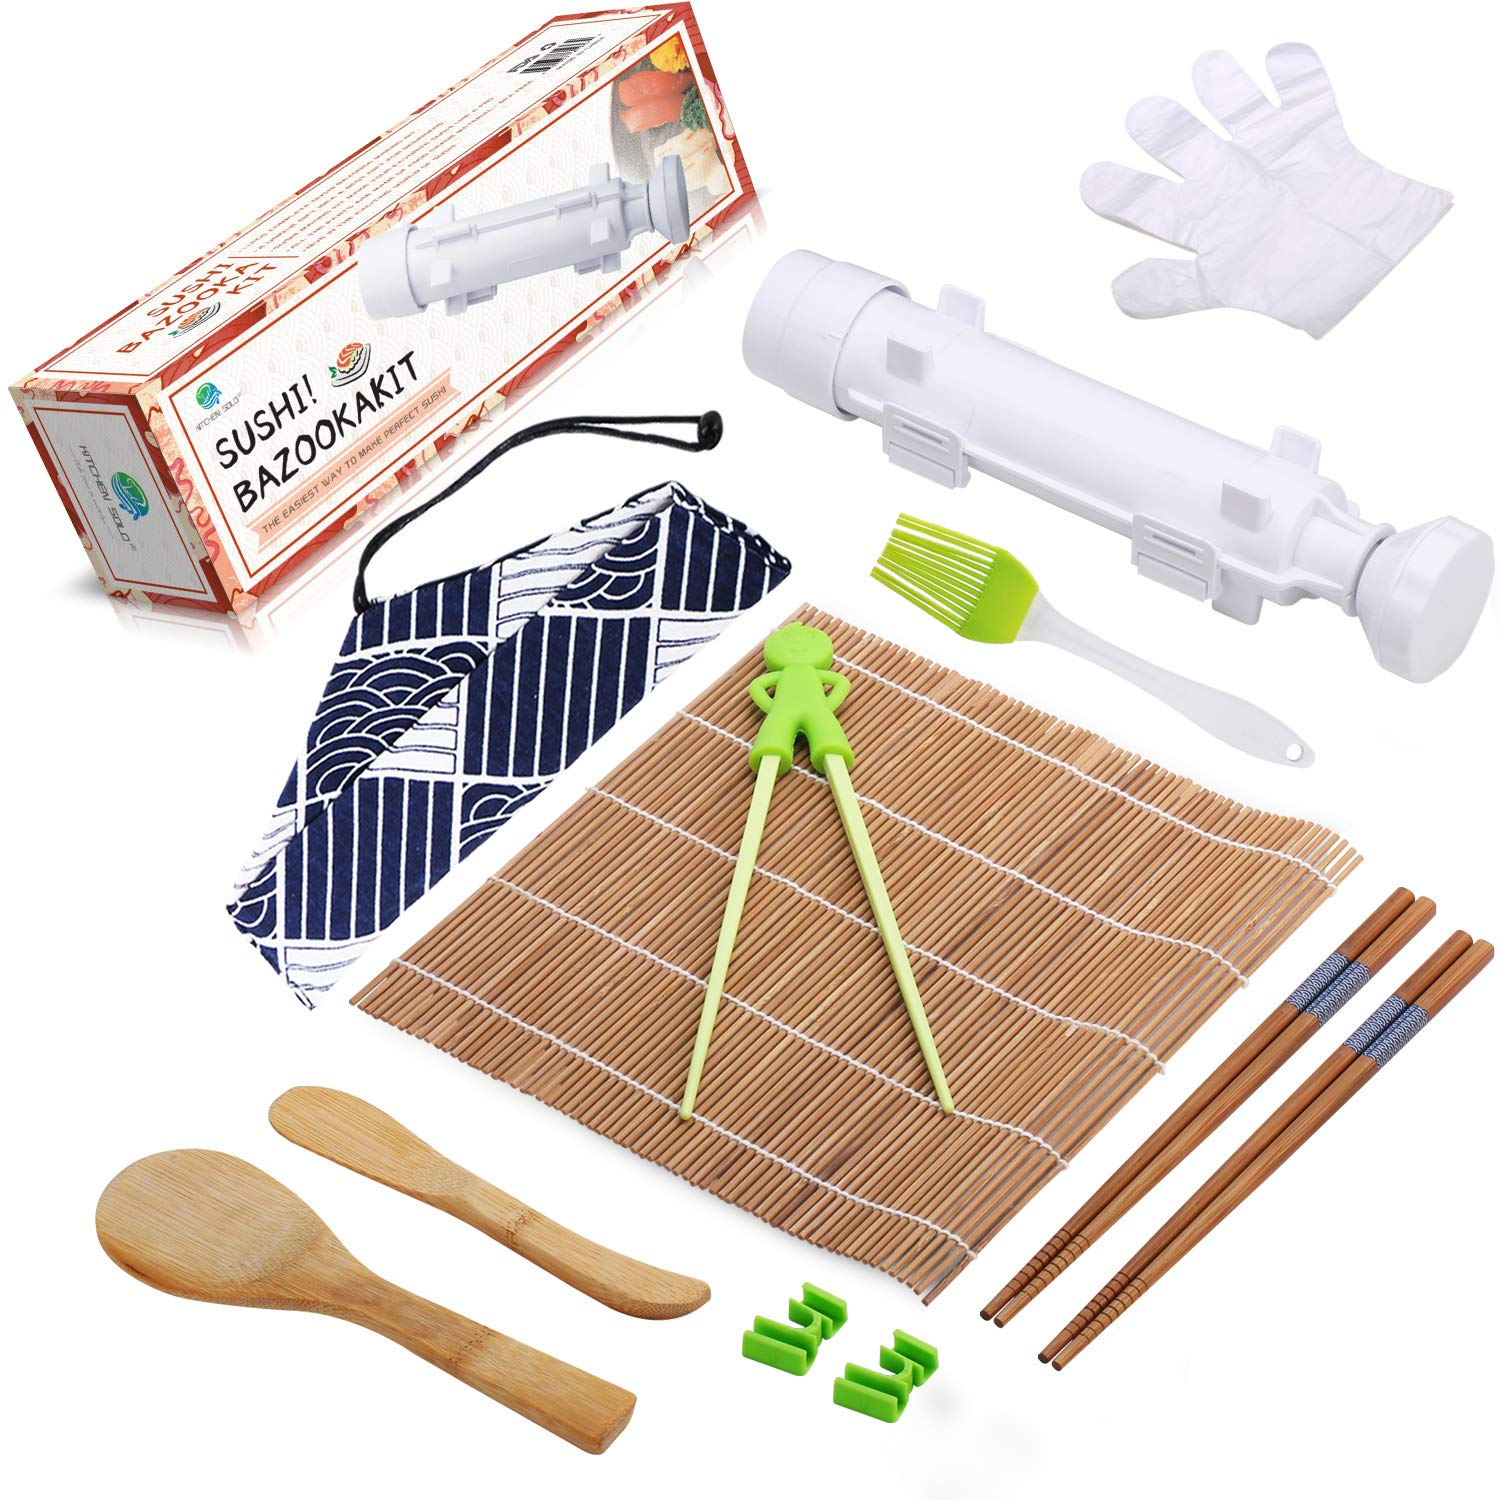 Beginner Sushi Making Kit - All In One Sushi Bazooka Maker with Bamboo Mats, Training Chopsticks with Helper, Paddle, Spreader, Silicone Brush, Disposable Gloves and Cotton Bag - Gift Box